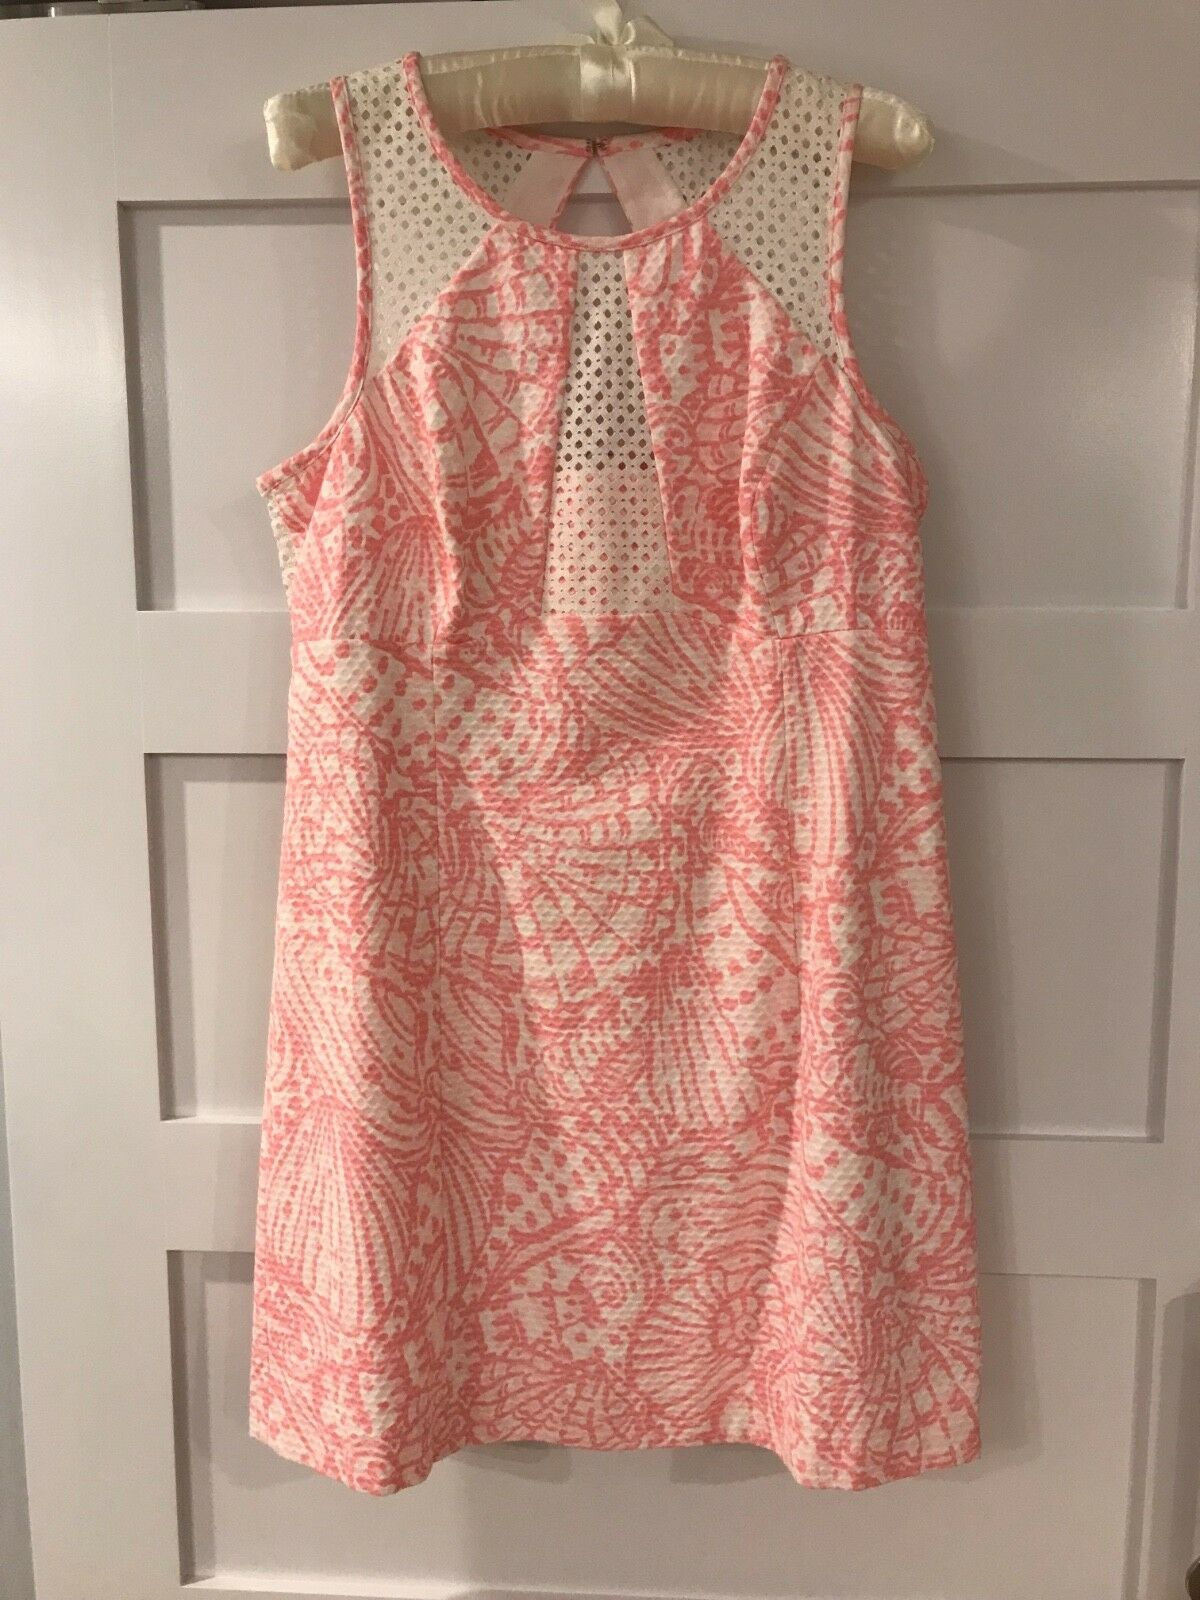 Lilly Pulitzer Kaylee Shift Dress Hubba Bubba Sea Cups Size 12